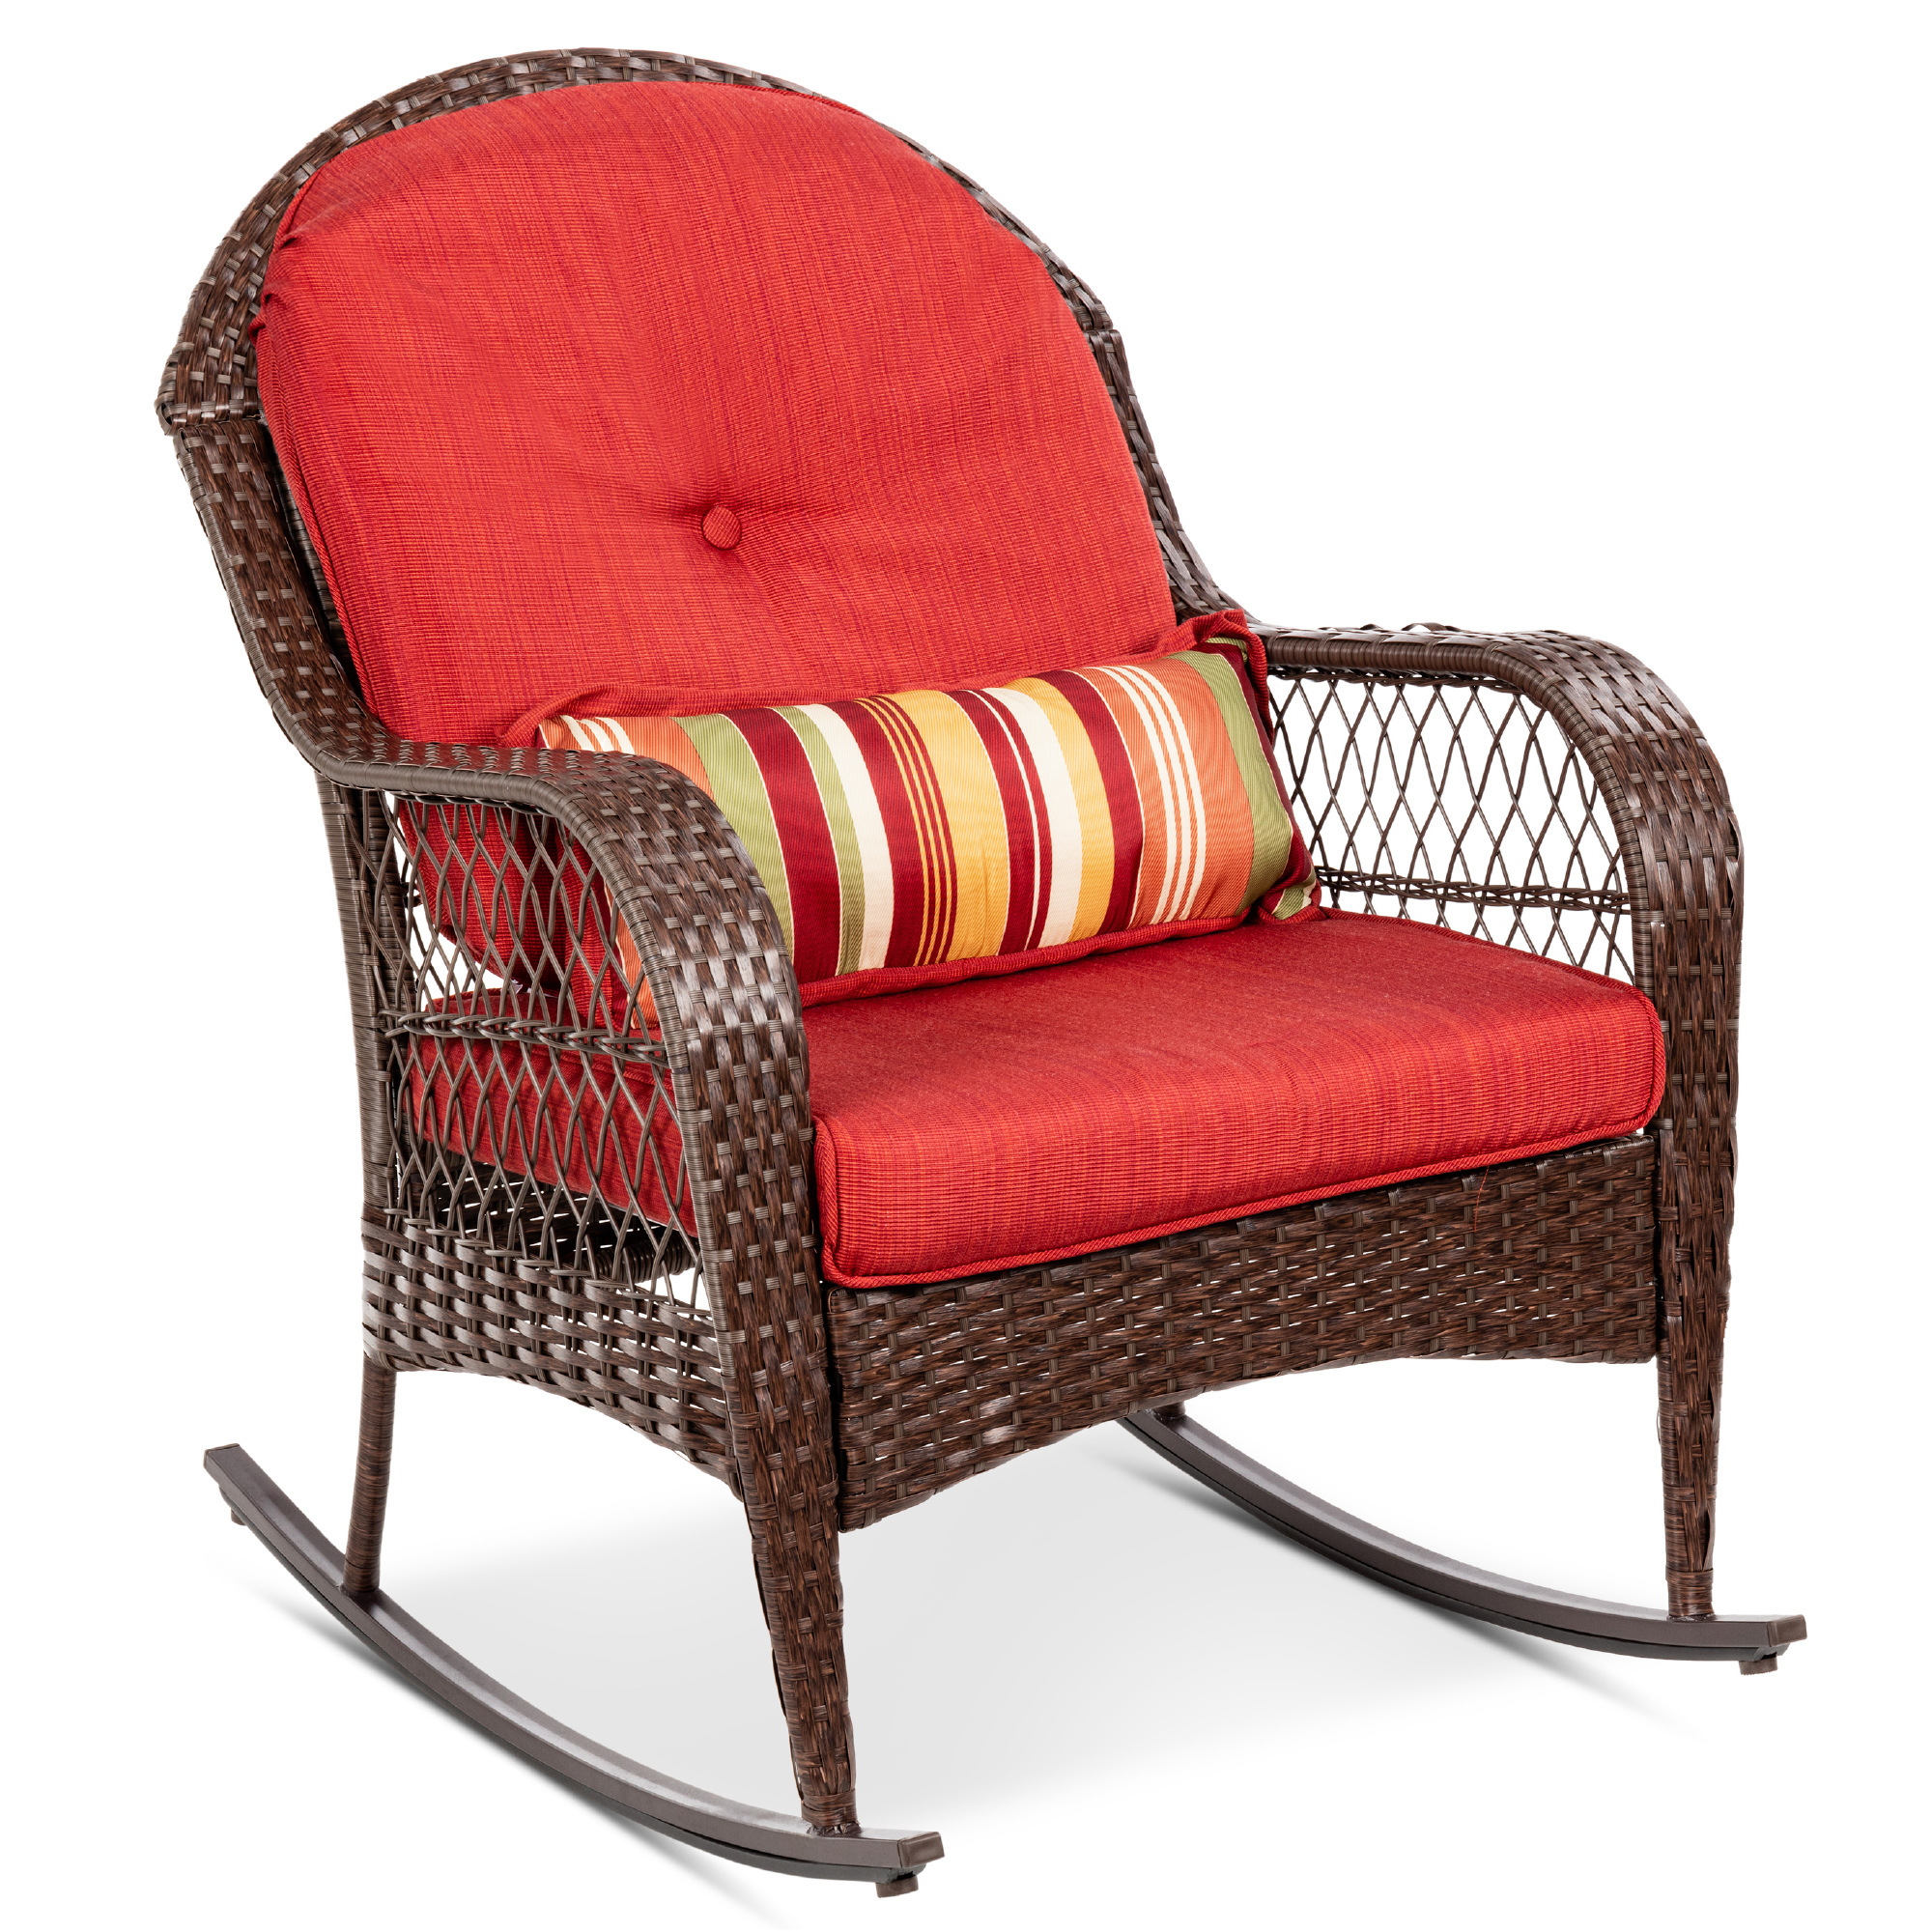 best choice products outdoor wicker rocking chair for patio porch w steel frame weather resistant cushions red